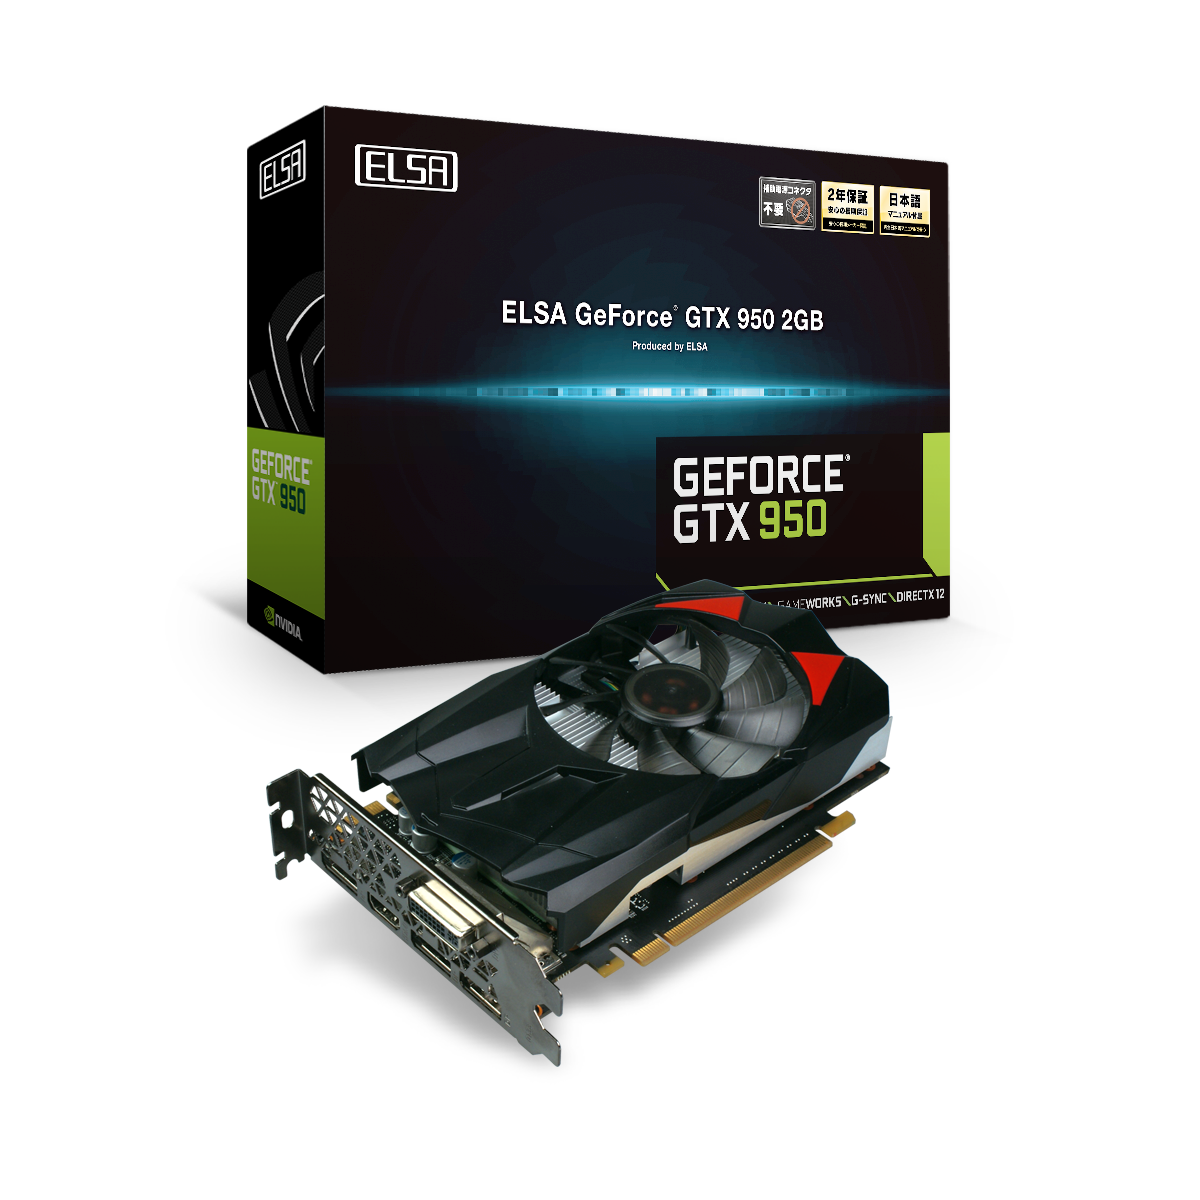 elsa_geforce_gtx_950_2gb_3qtr_box